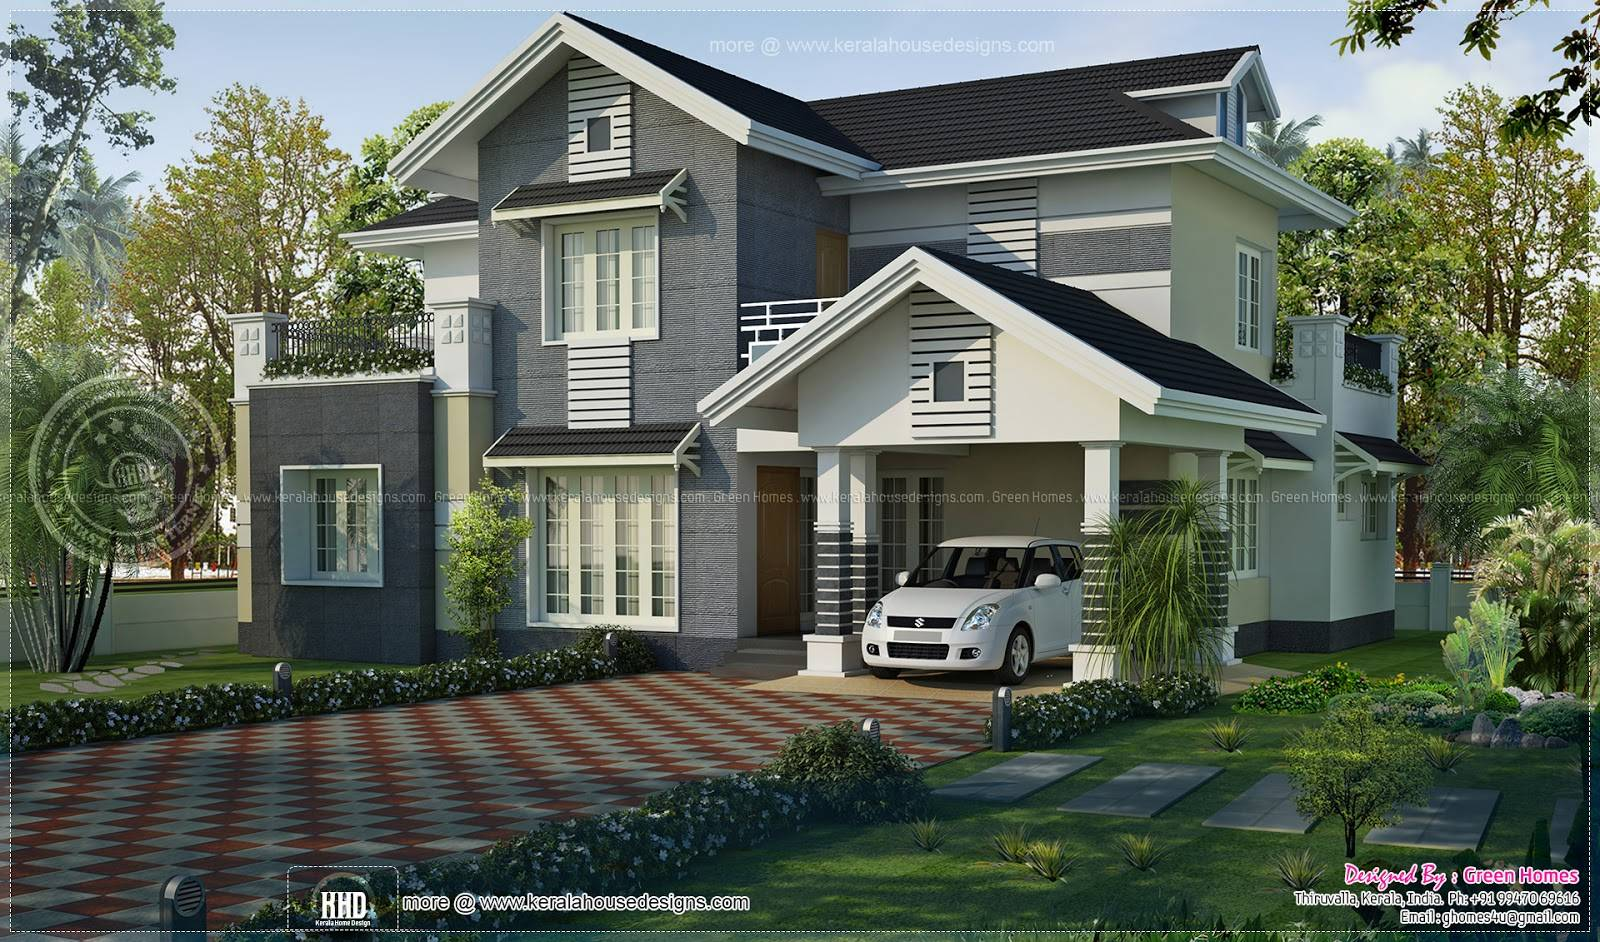 Kerala Style Sloped Roof House Design Green Homes